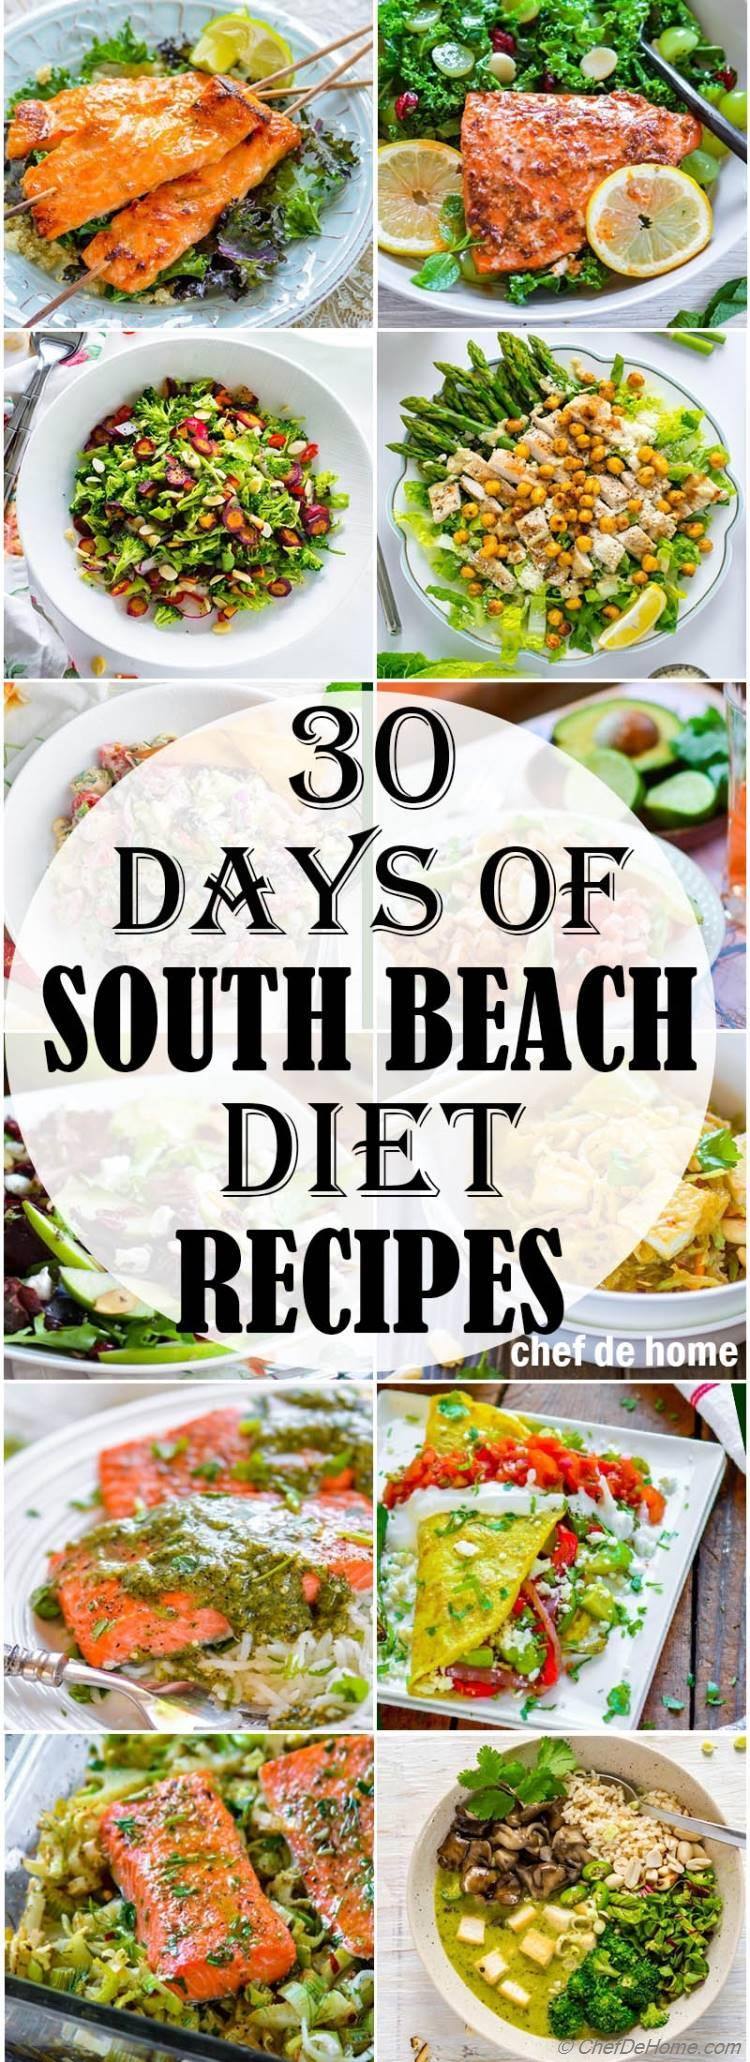 30 Days of South Beach Diet